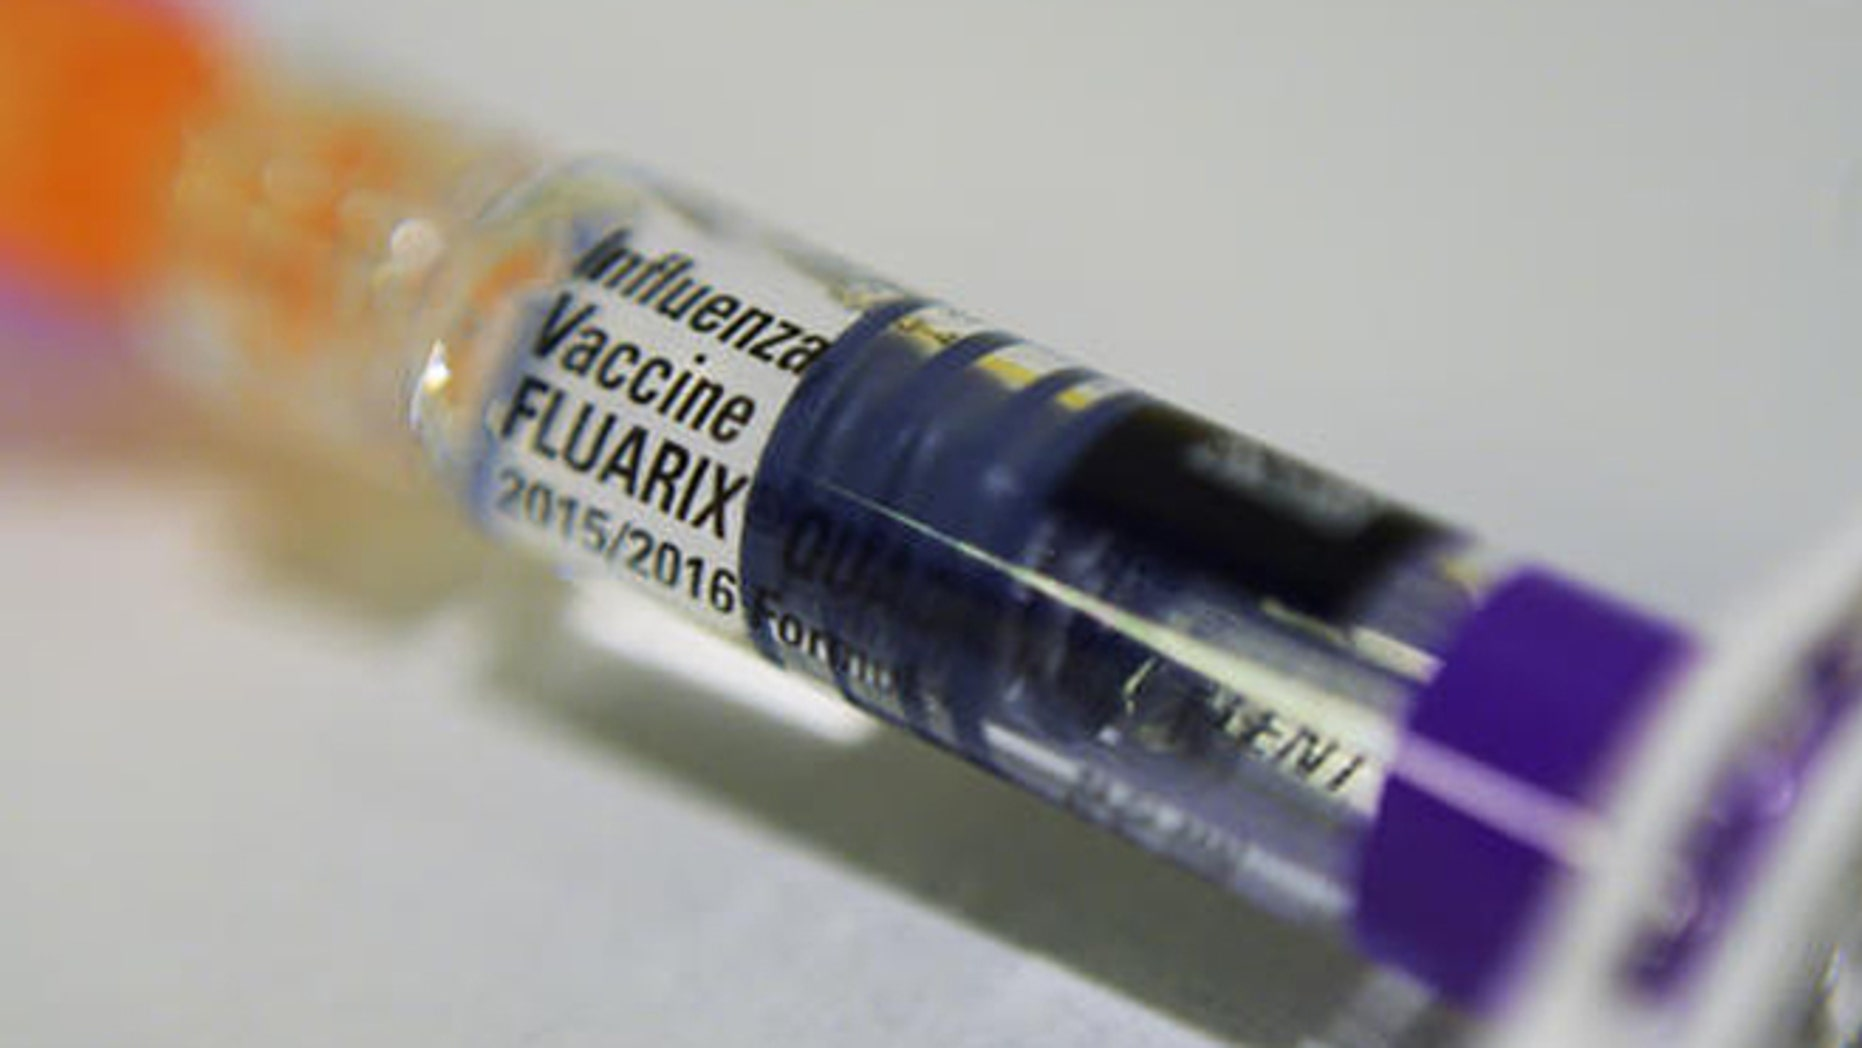 This Thursday, Nov. 12, 2015 file  photo shows a single dosage syringe of the Fluarix quadrivalent influenza virus vaccine in New York. Zika is in the spotlight but there are other bugs and health problems that Olympic athletes and fans should keep in mind, including the flu. (AP Photo/Patrick Sison)